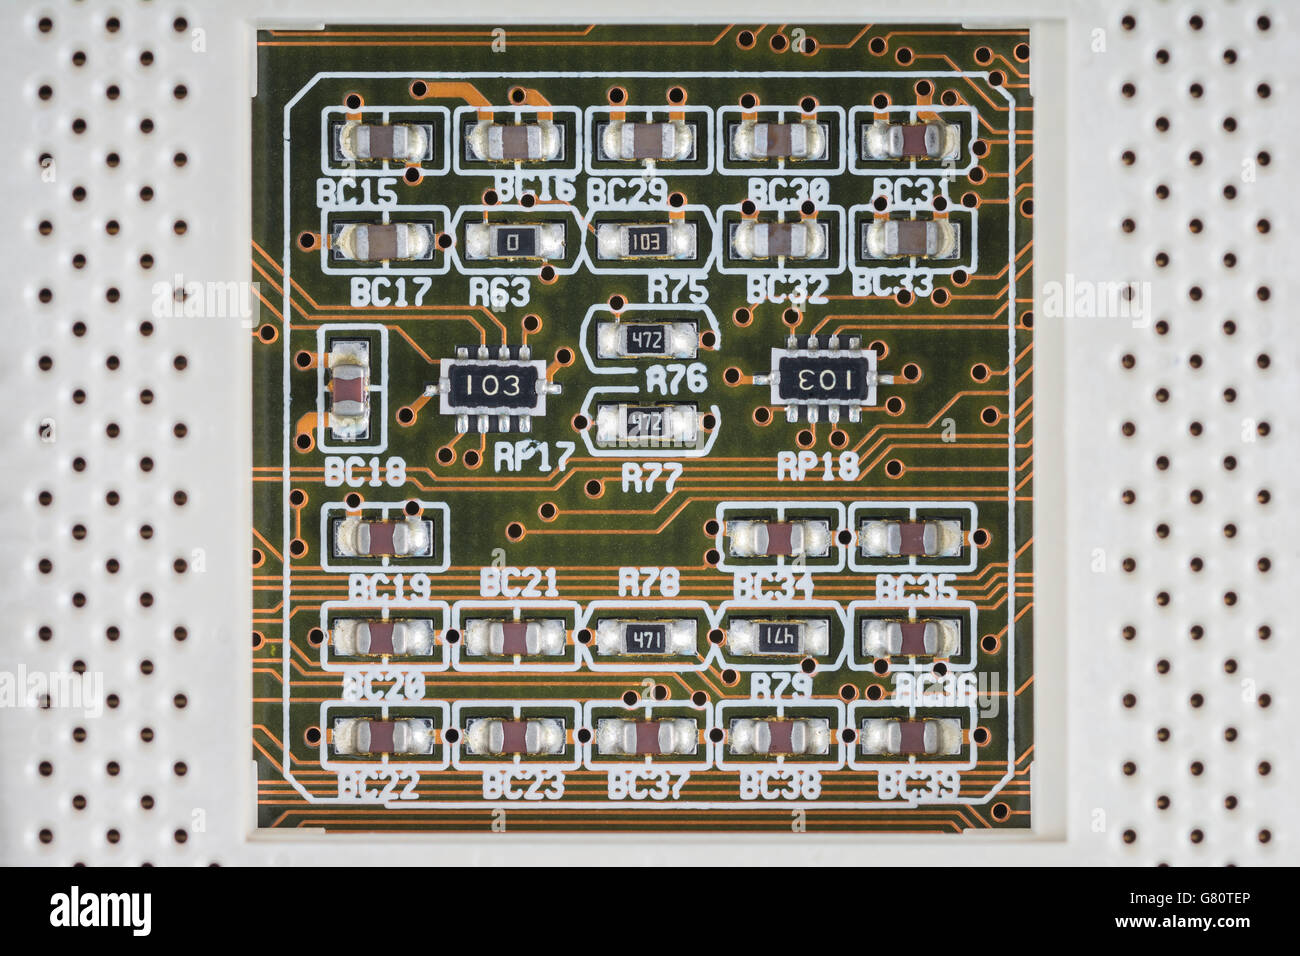 Concept - computer technology / cpu / circuit architecture . Socket 7 with surface mount components below CPU chip. - Stock Image